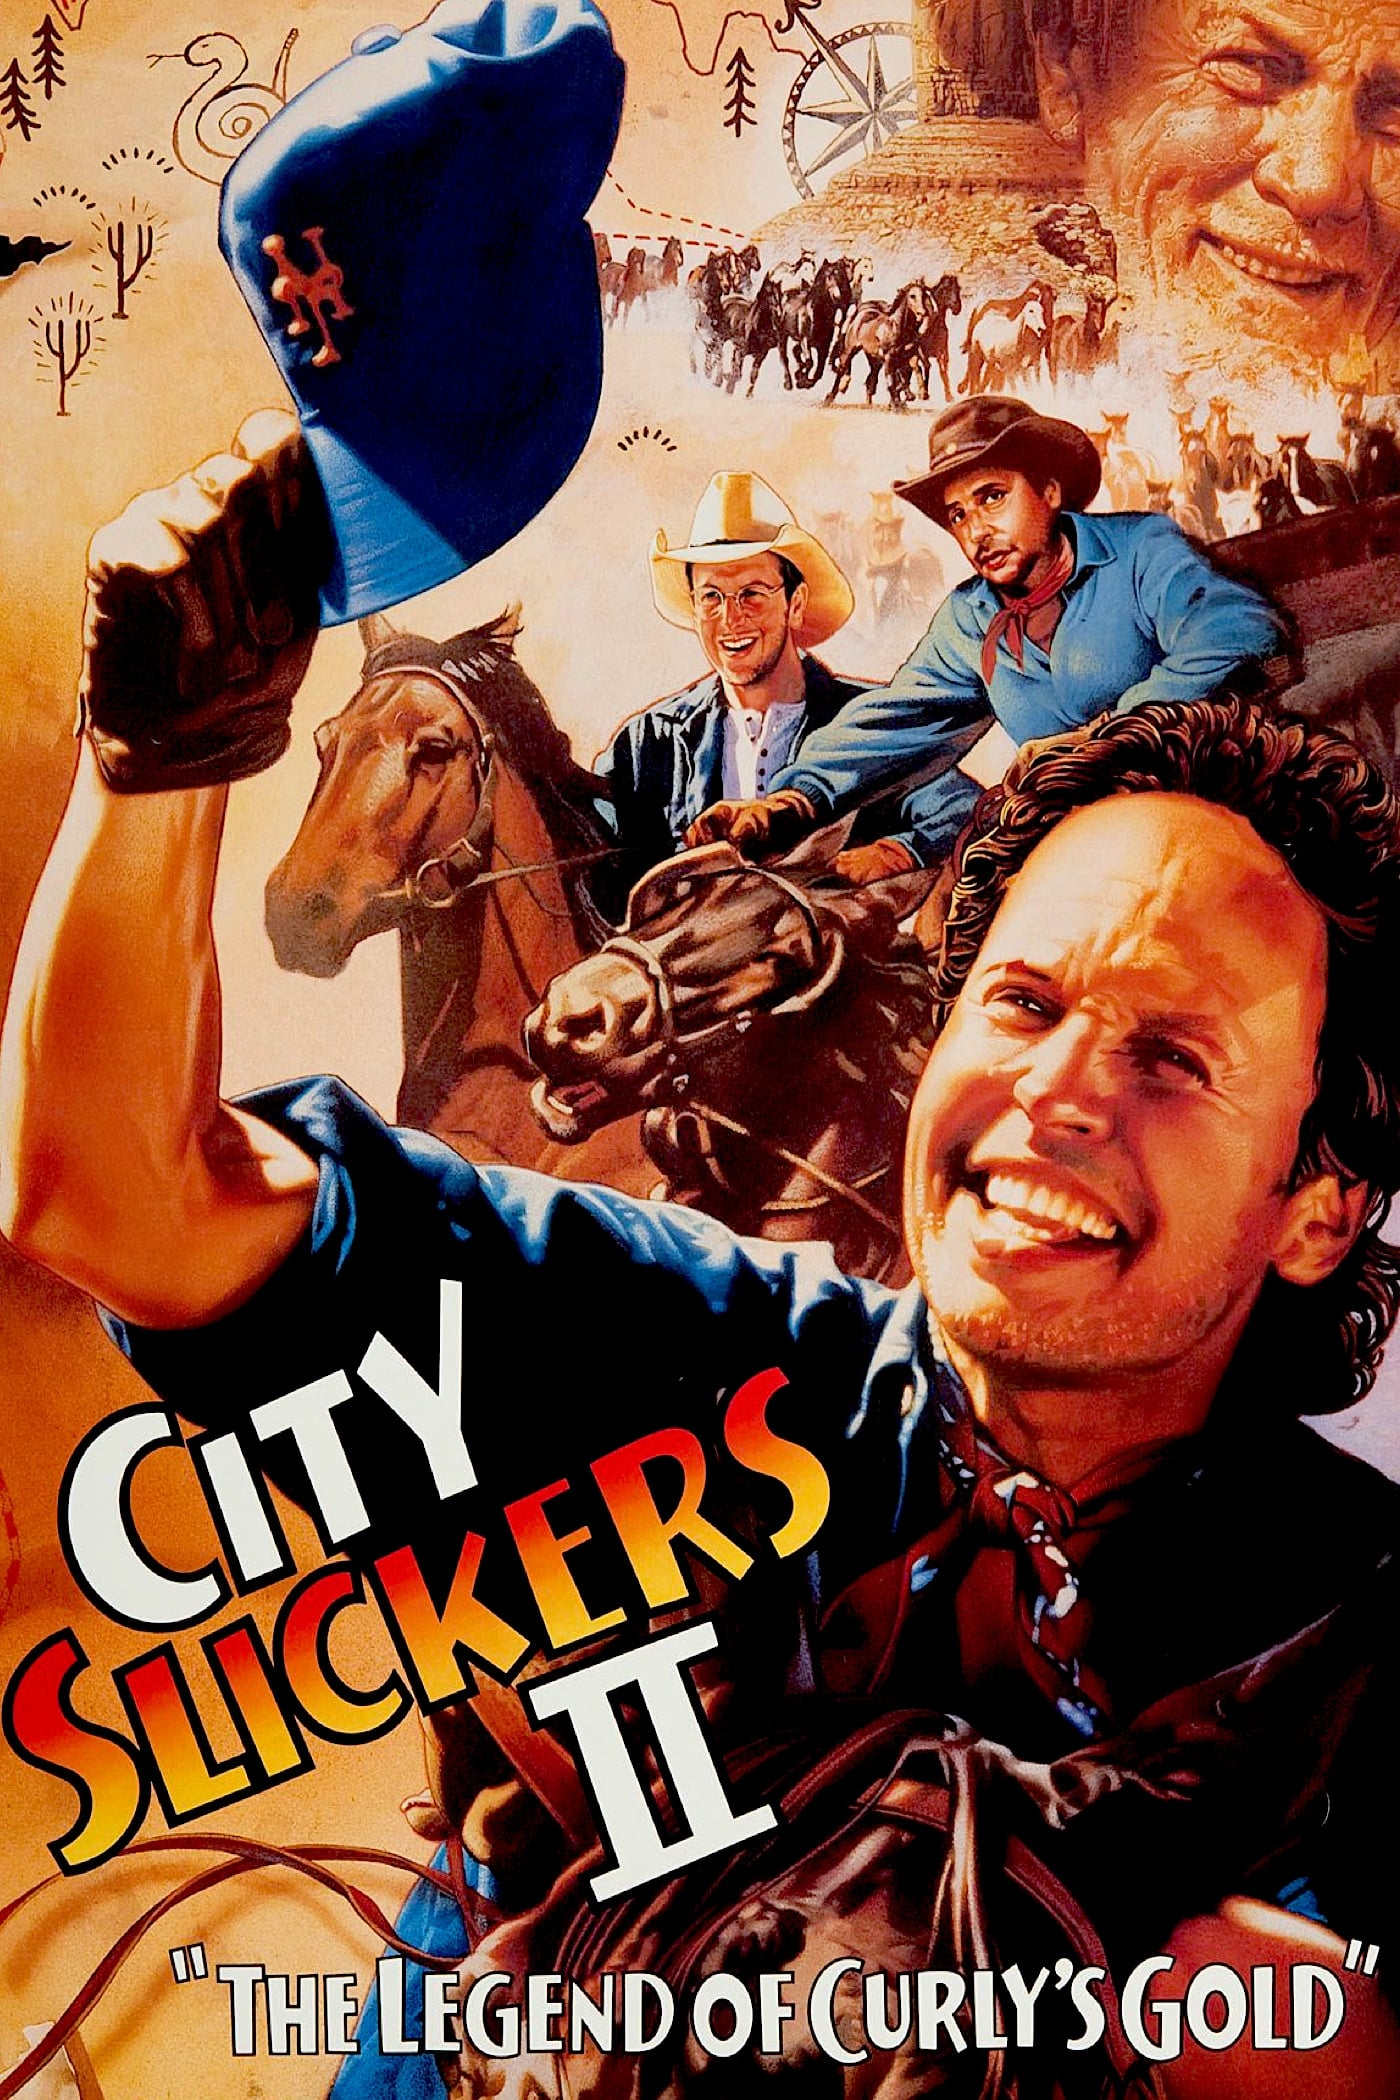 Watch City Slickers II: The Legend of Curly's Gold Online